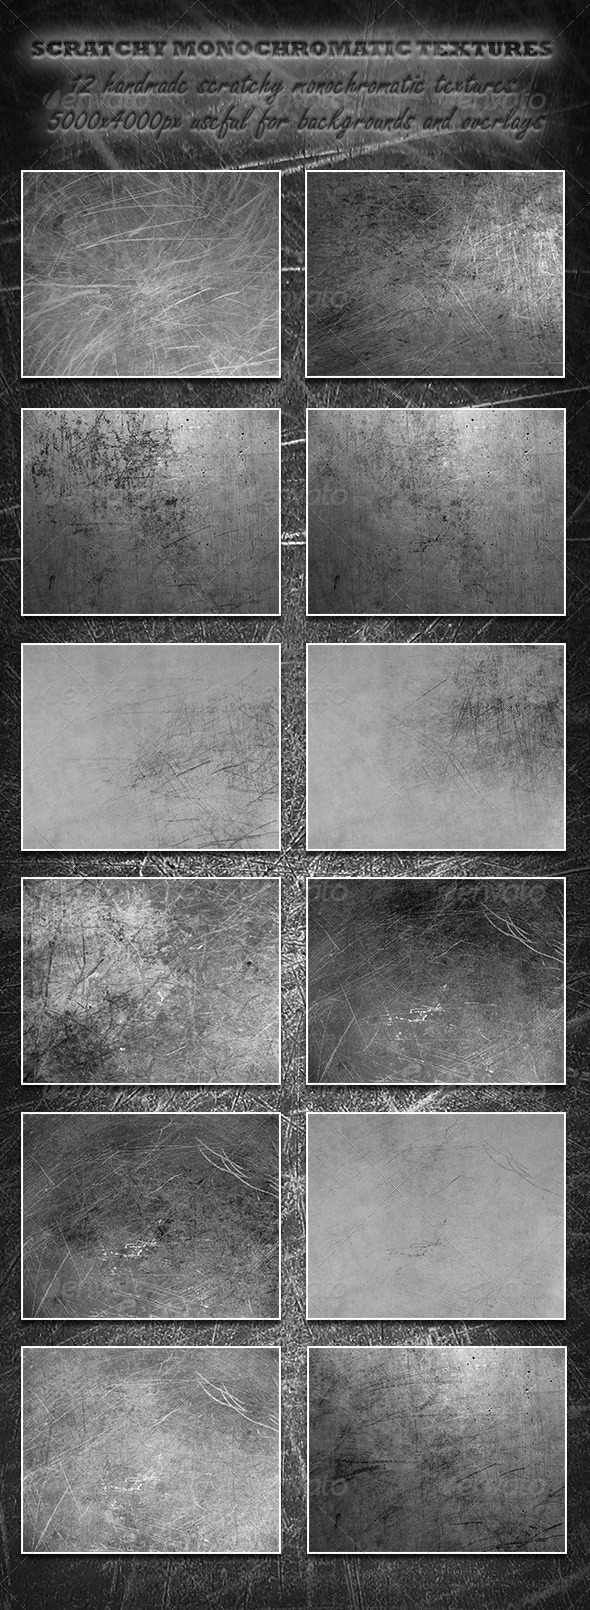 GraphicRiver Scratchy Monochromatic Textures 5889805